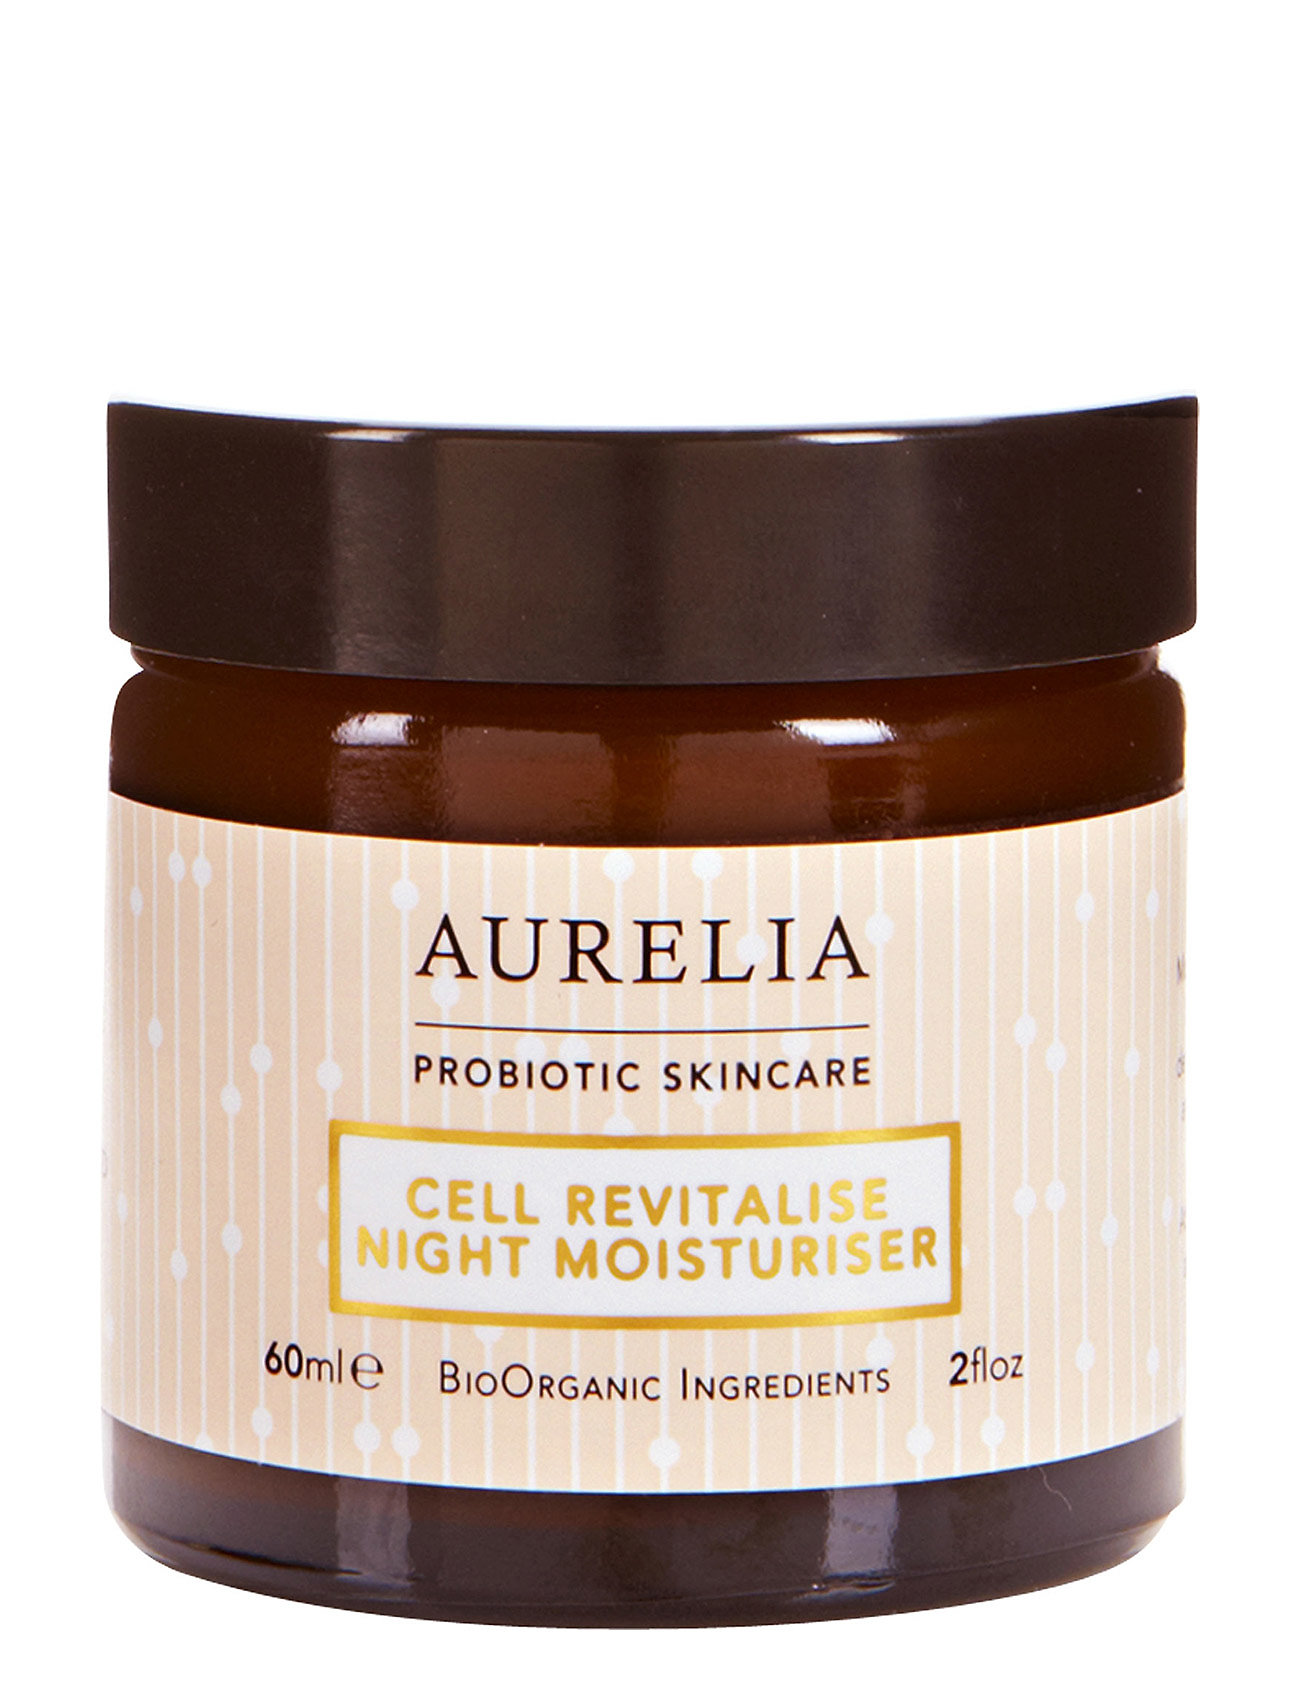 Image of Cell Revitalise Night Moisturiser 60 Ml. Beauty WOMEN Skin Care Face Moisturizers Night Cream Nude Aurelia Probiotic Skincare (3121113961)